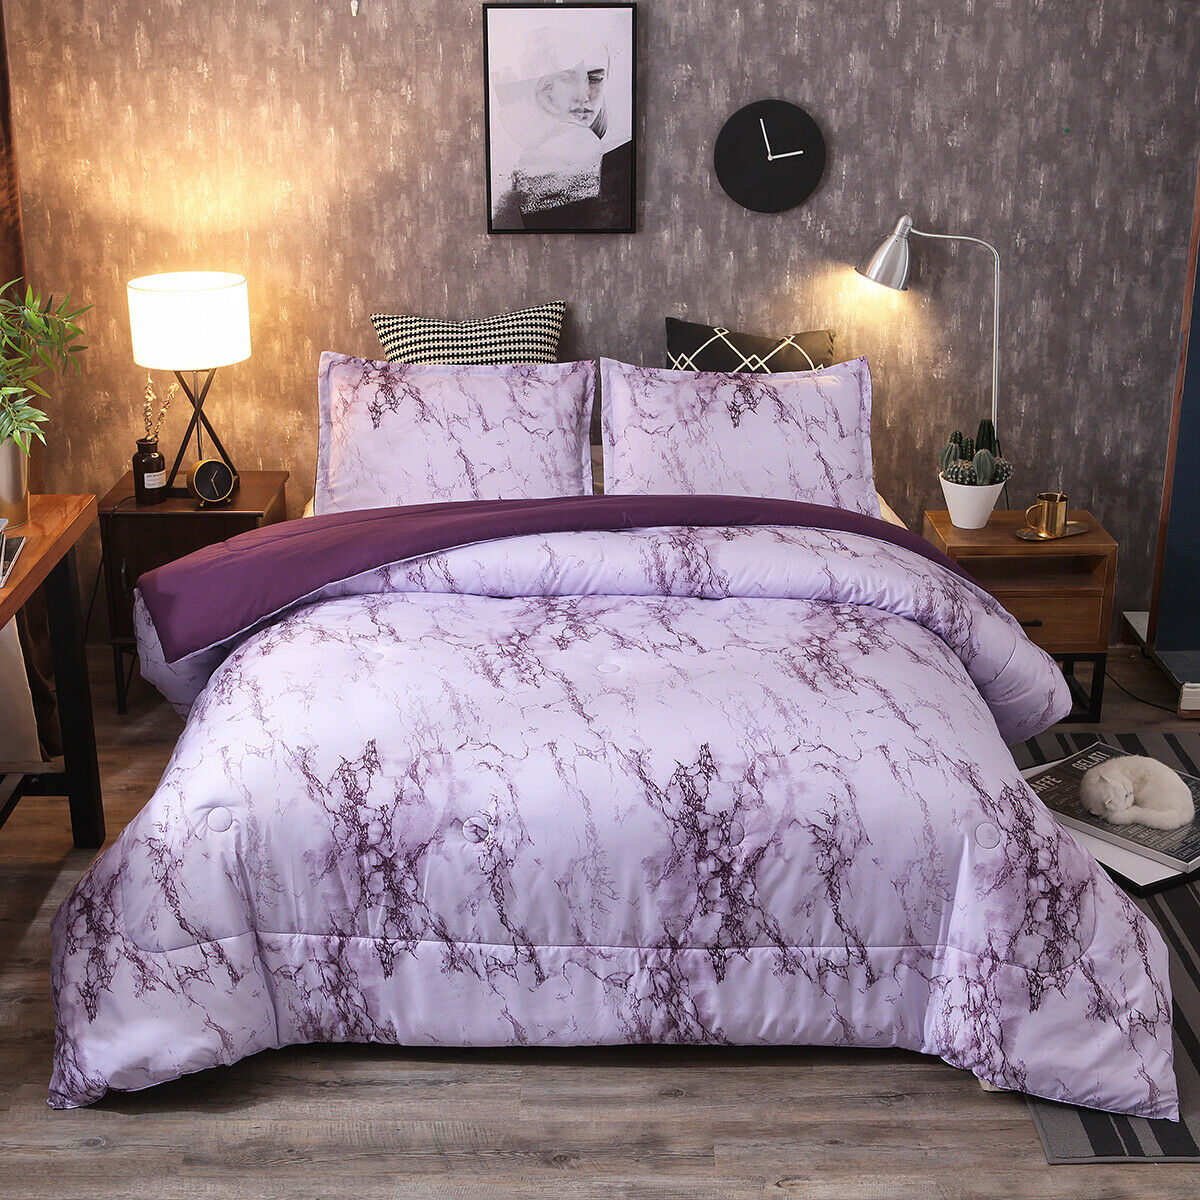 Soft King Size Comforter Pillow Cases Set Quilted Warm Bed Home Marble Purple